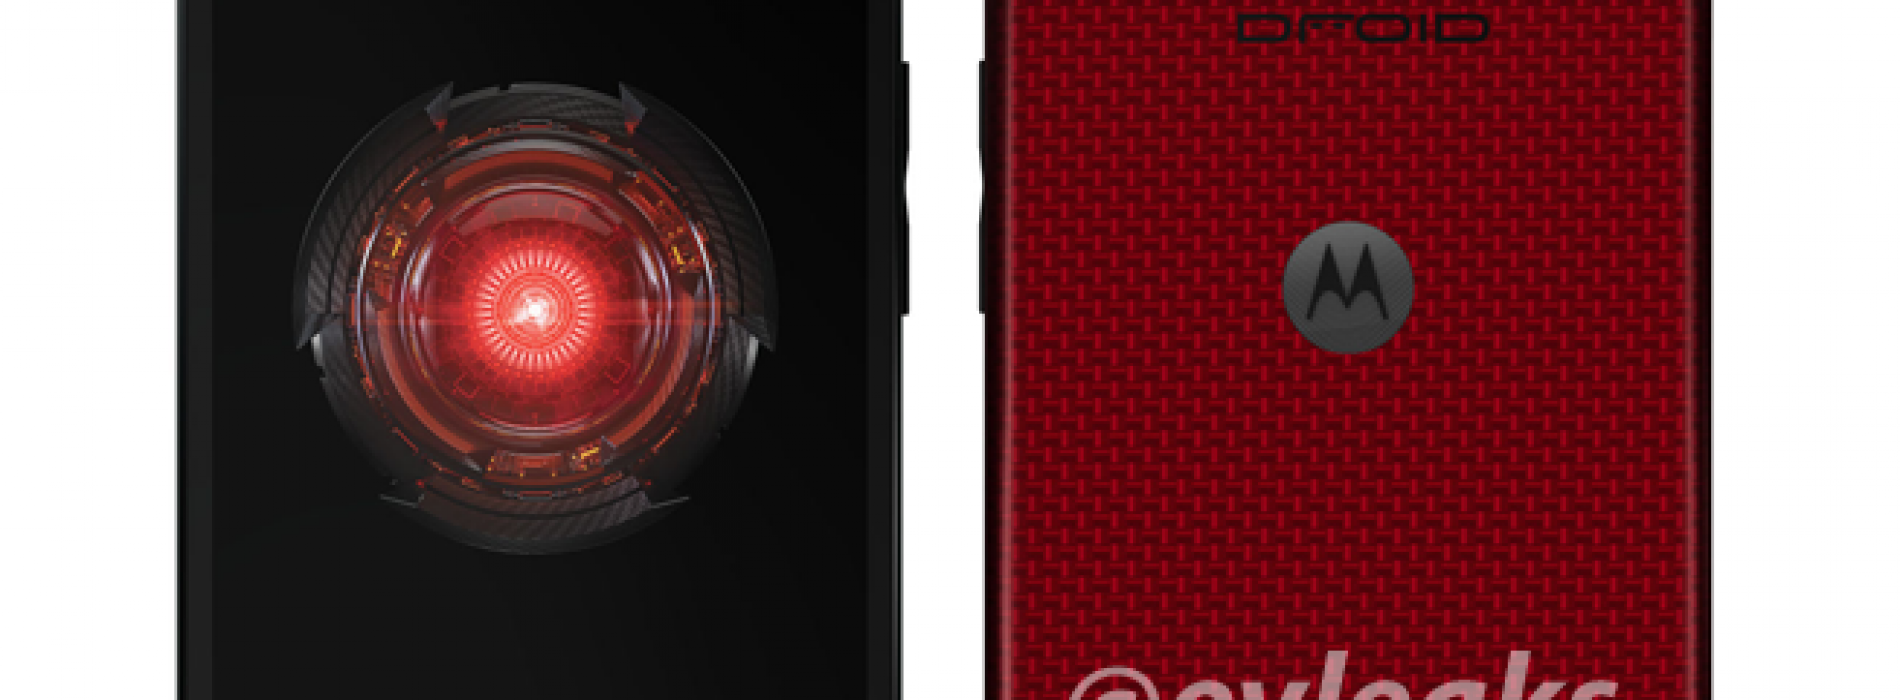 Motorola Droid Mini pops up dressed in red